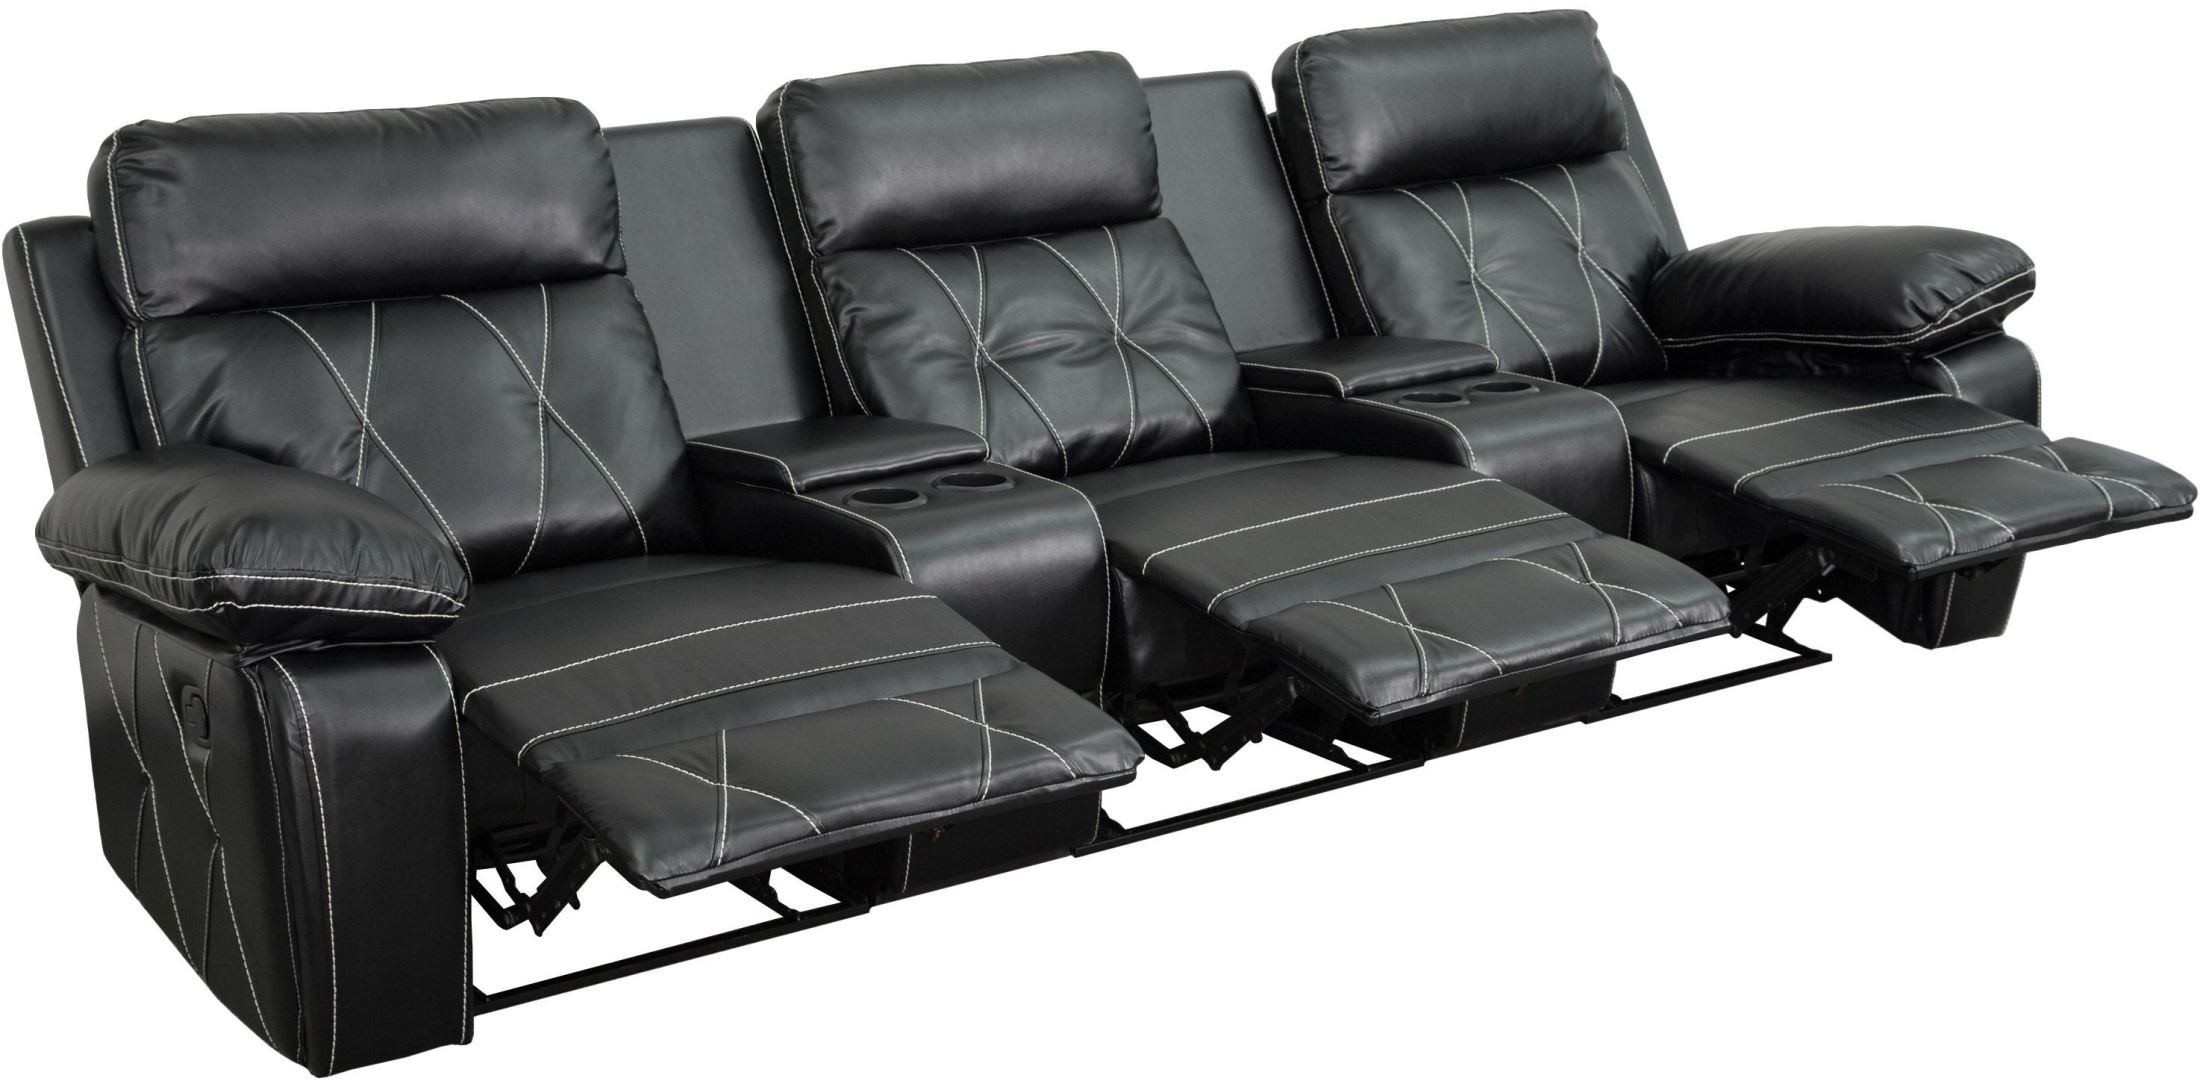 theater chairs with cup holders twin sleeper reel comfort series 3 seat reclining black leather